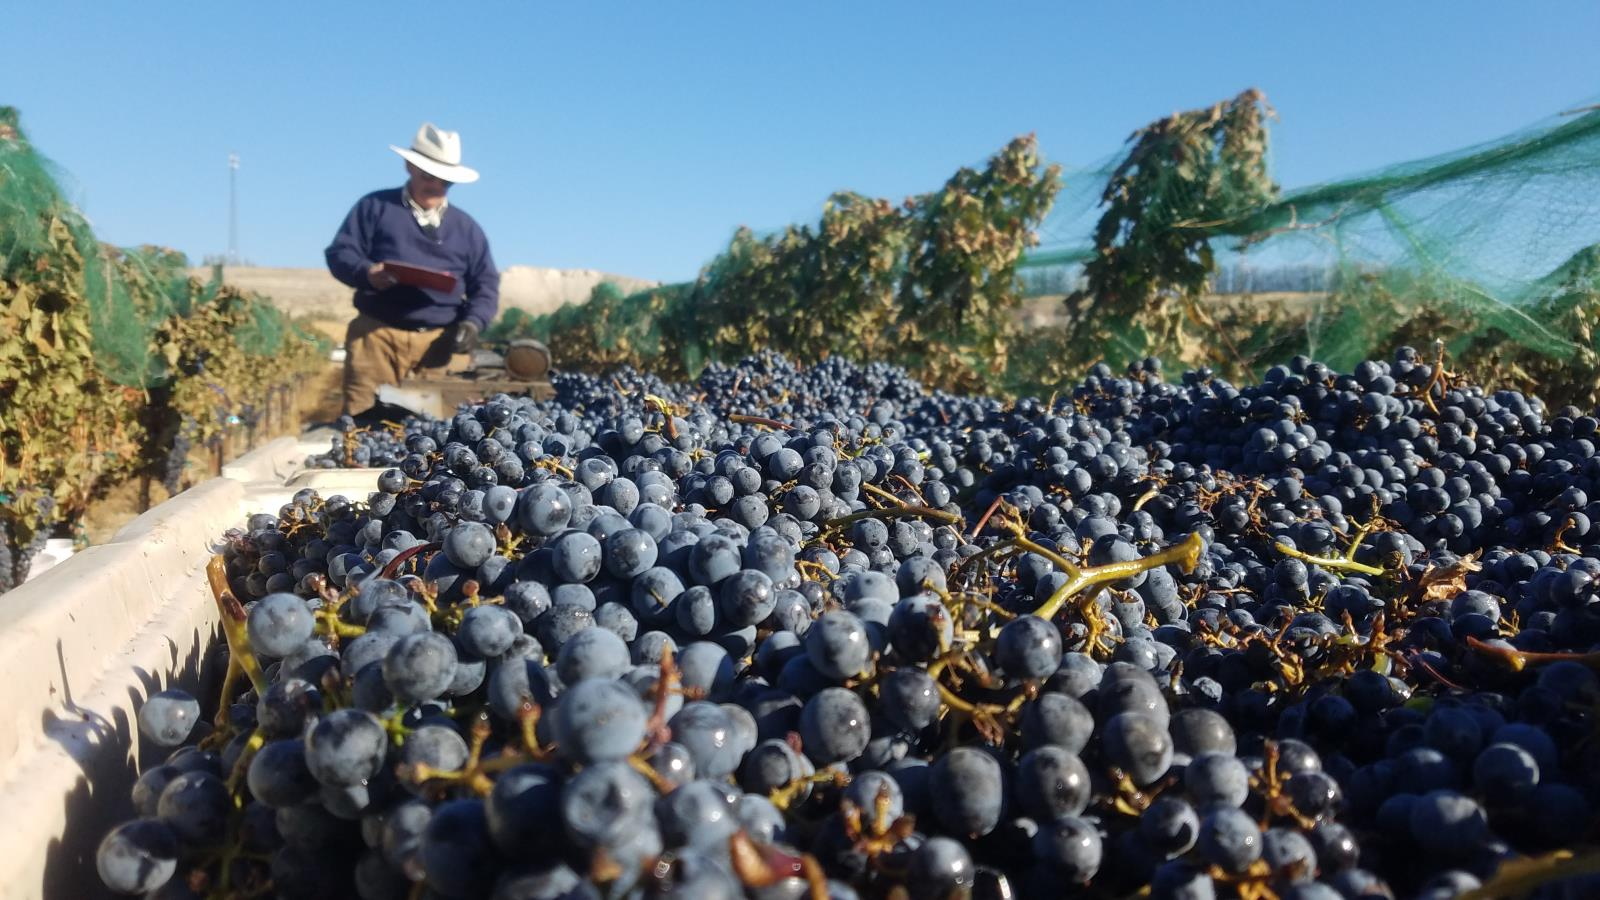 Wine grapes are harvestd in a southwestern Idaho vineyard.